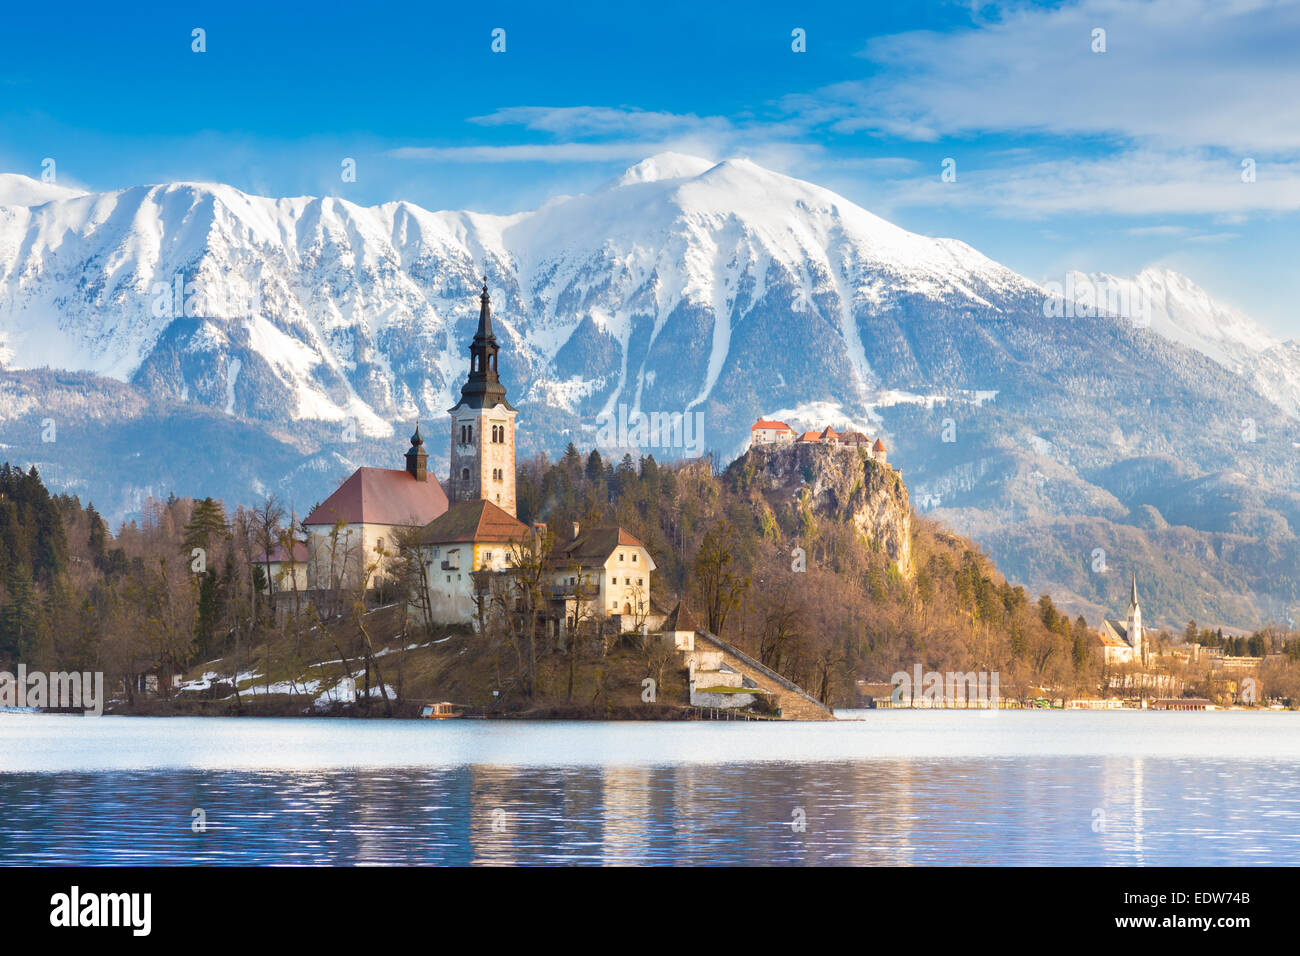 Bled, Slovenia, Europe. - Stock Image